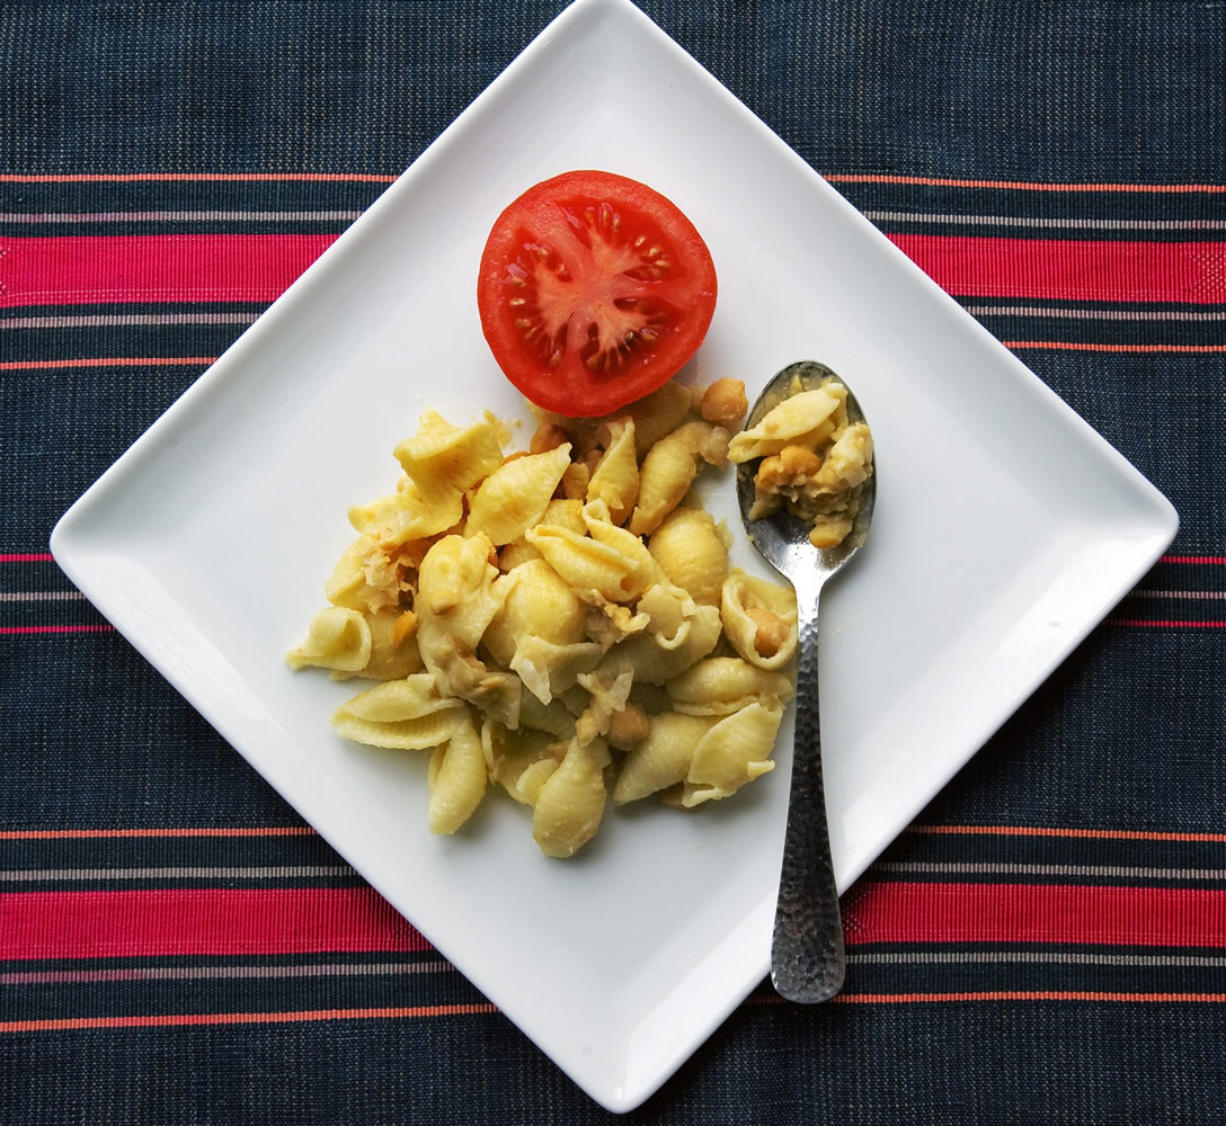 Bill O'Leary/The Washington Post Chickpea Pasta transforms canned beans with further cooking and a healthy pour of olive oil.